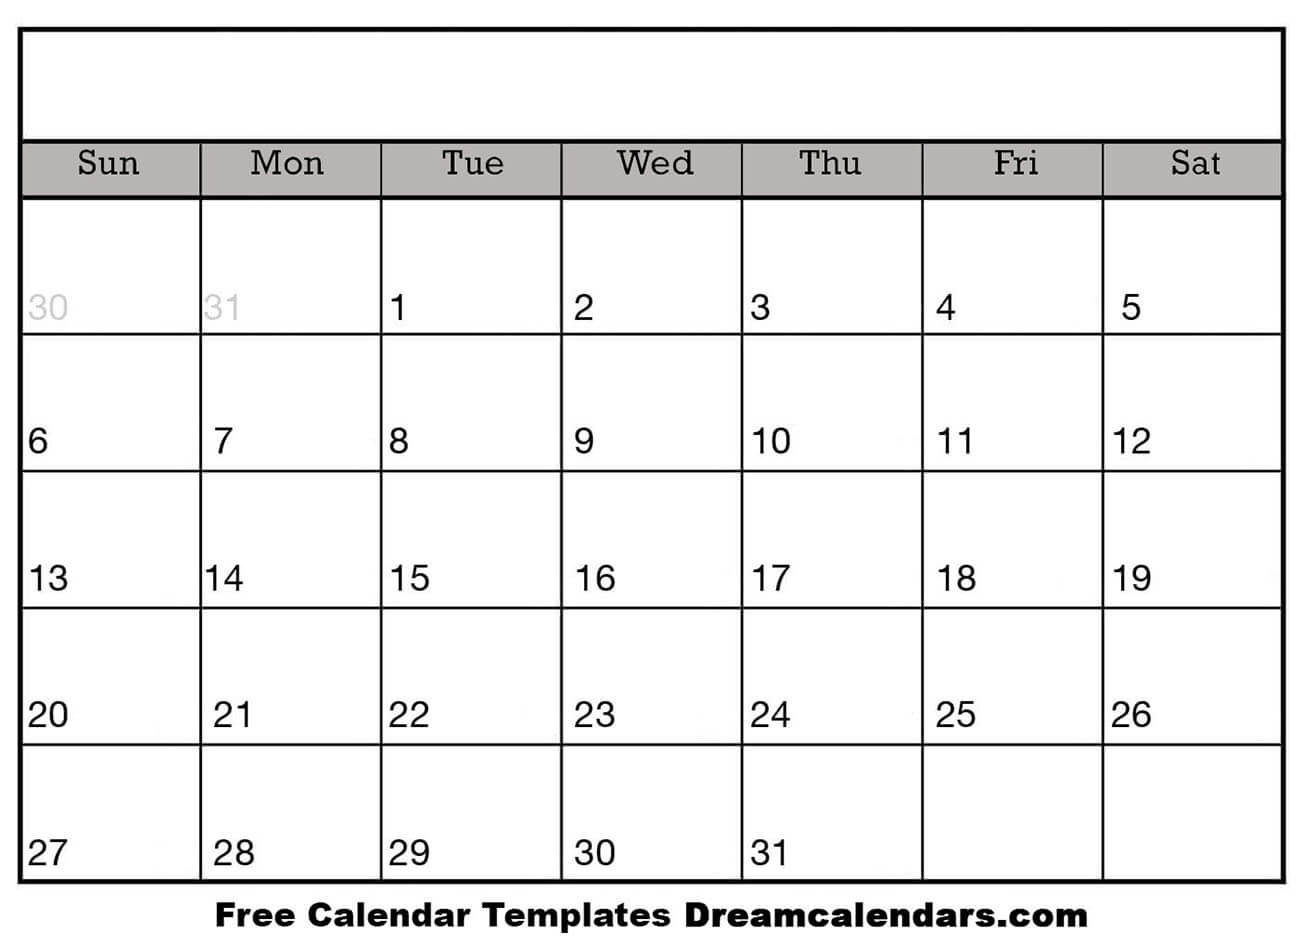 Printable Blank Calendar - Dream Calendars for Free Printable Blank Calendar Template